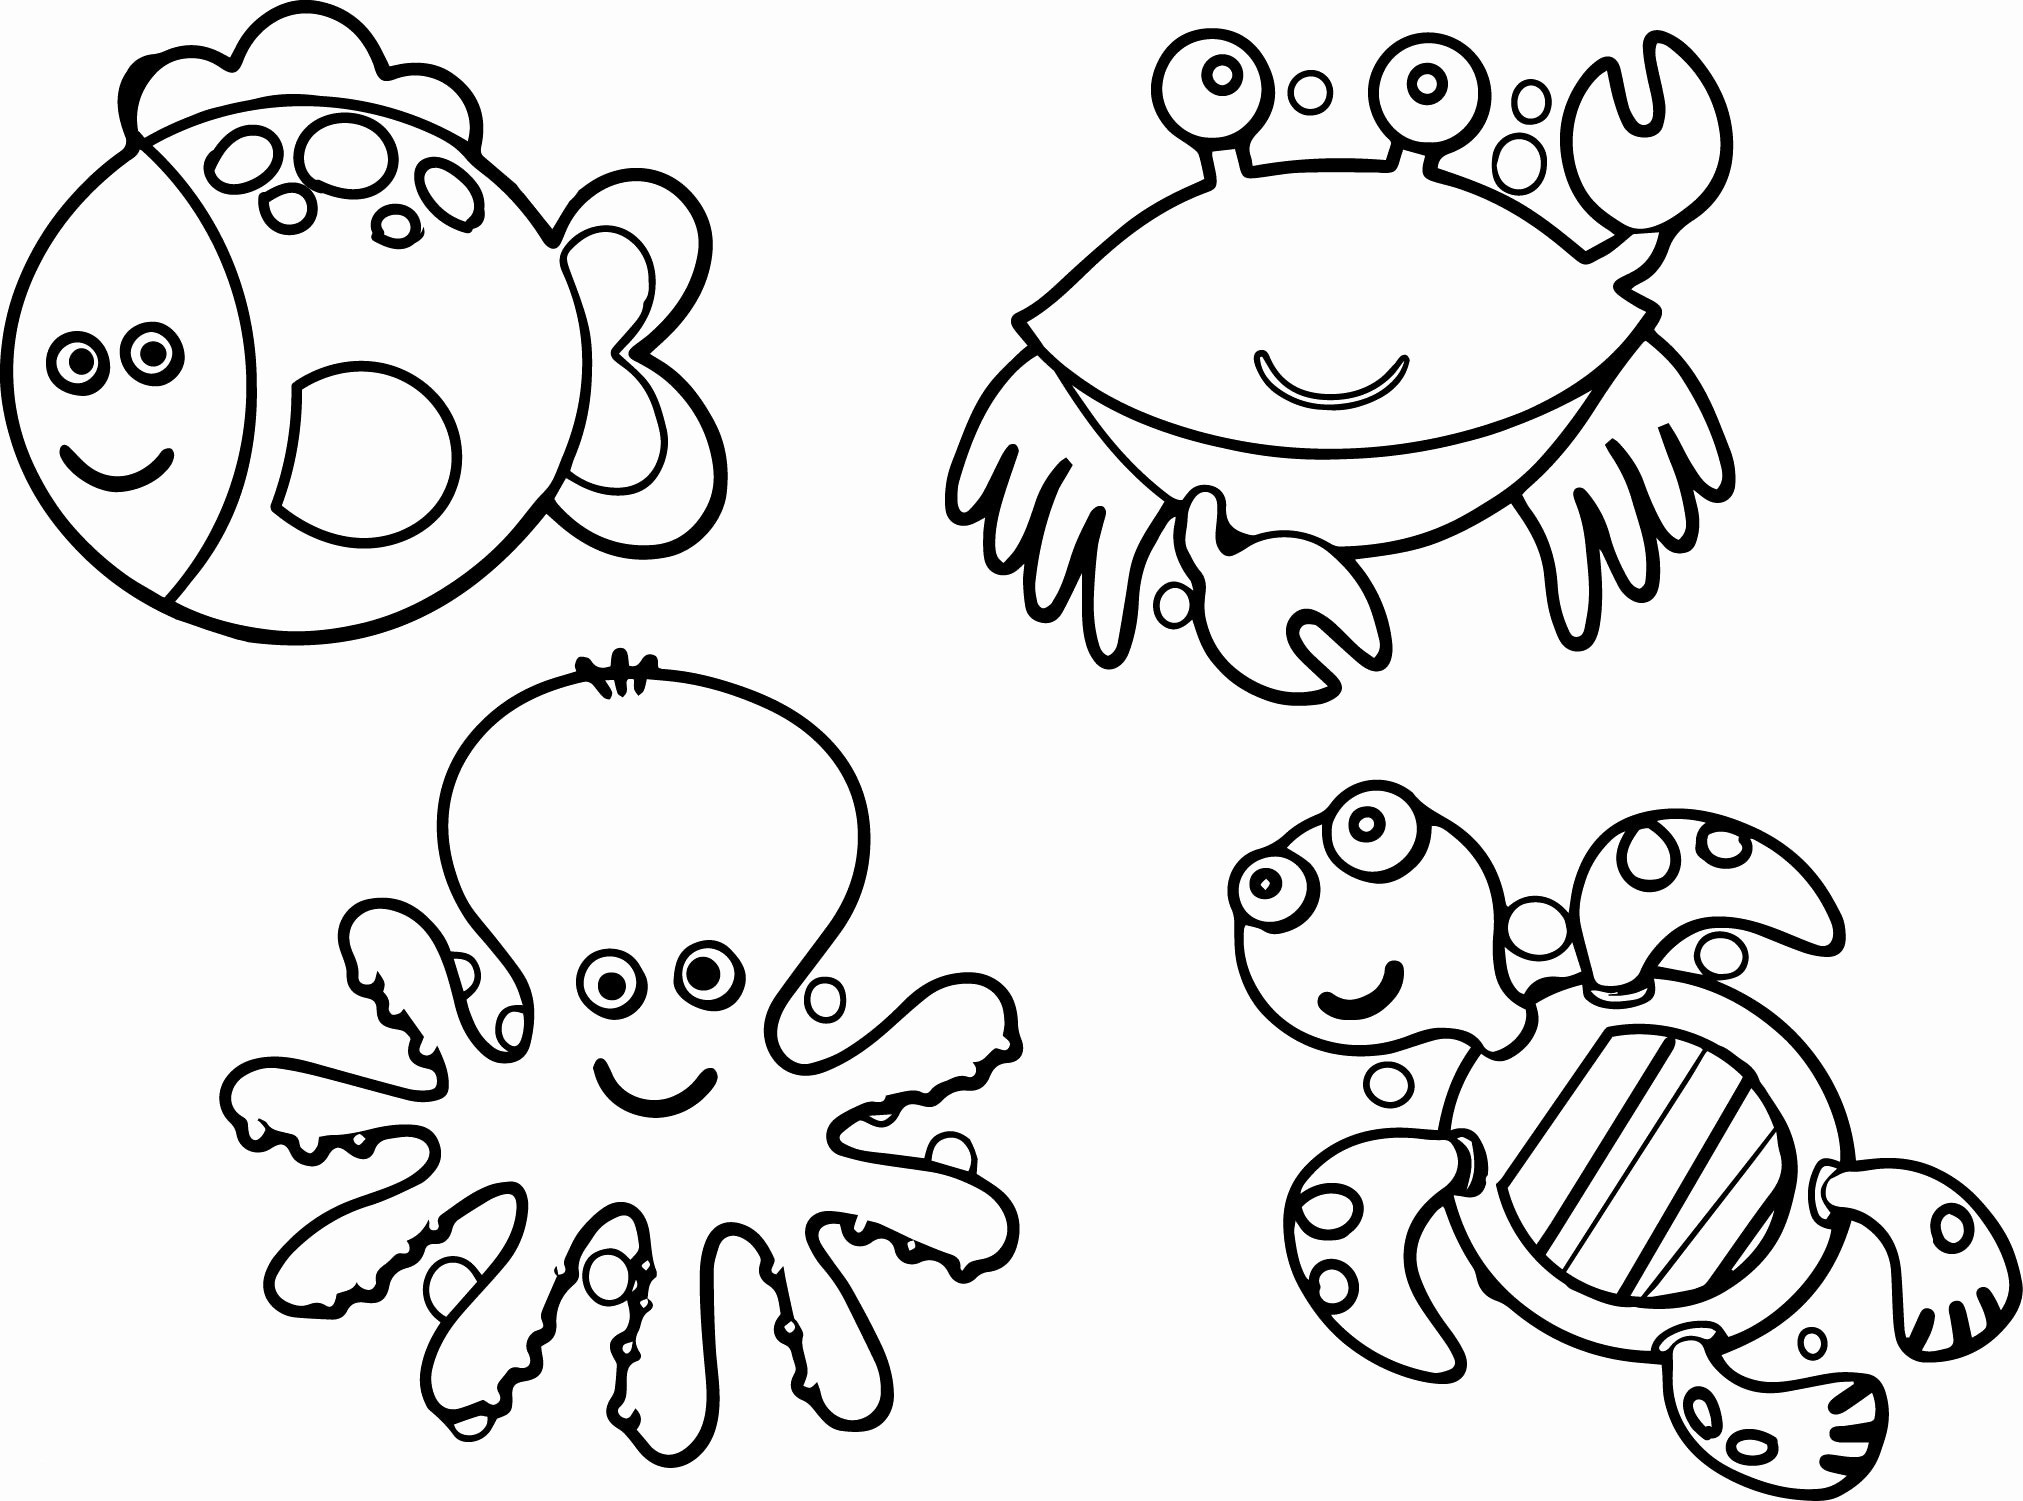 coloring templates animals animal coloring pages best coloring pages for kids animals coloring templates